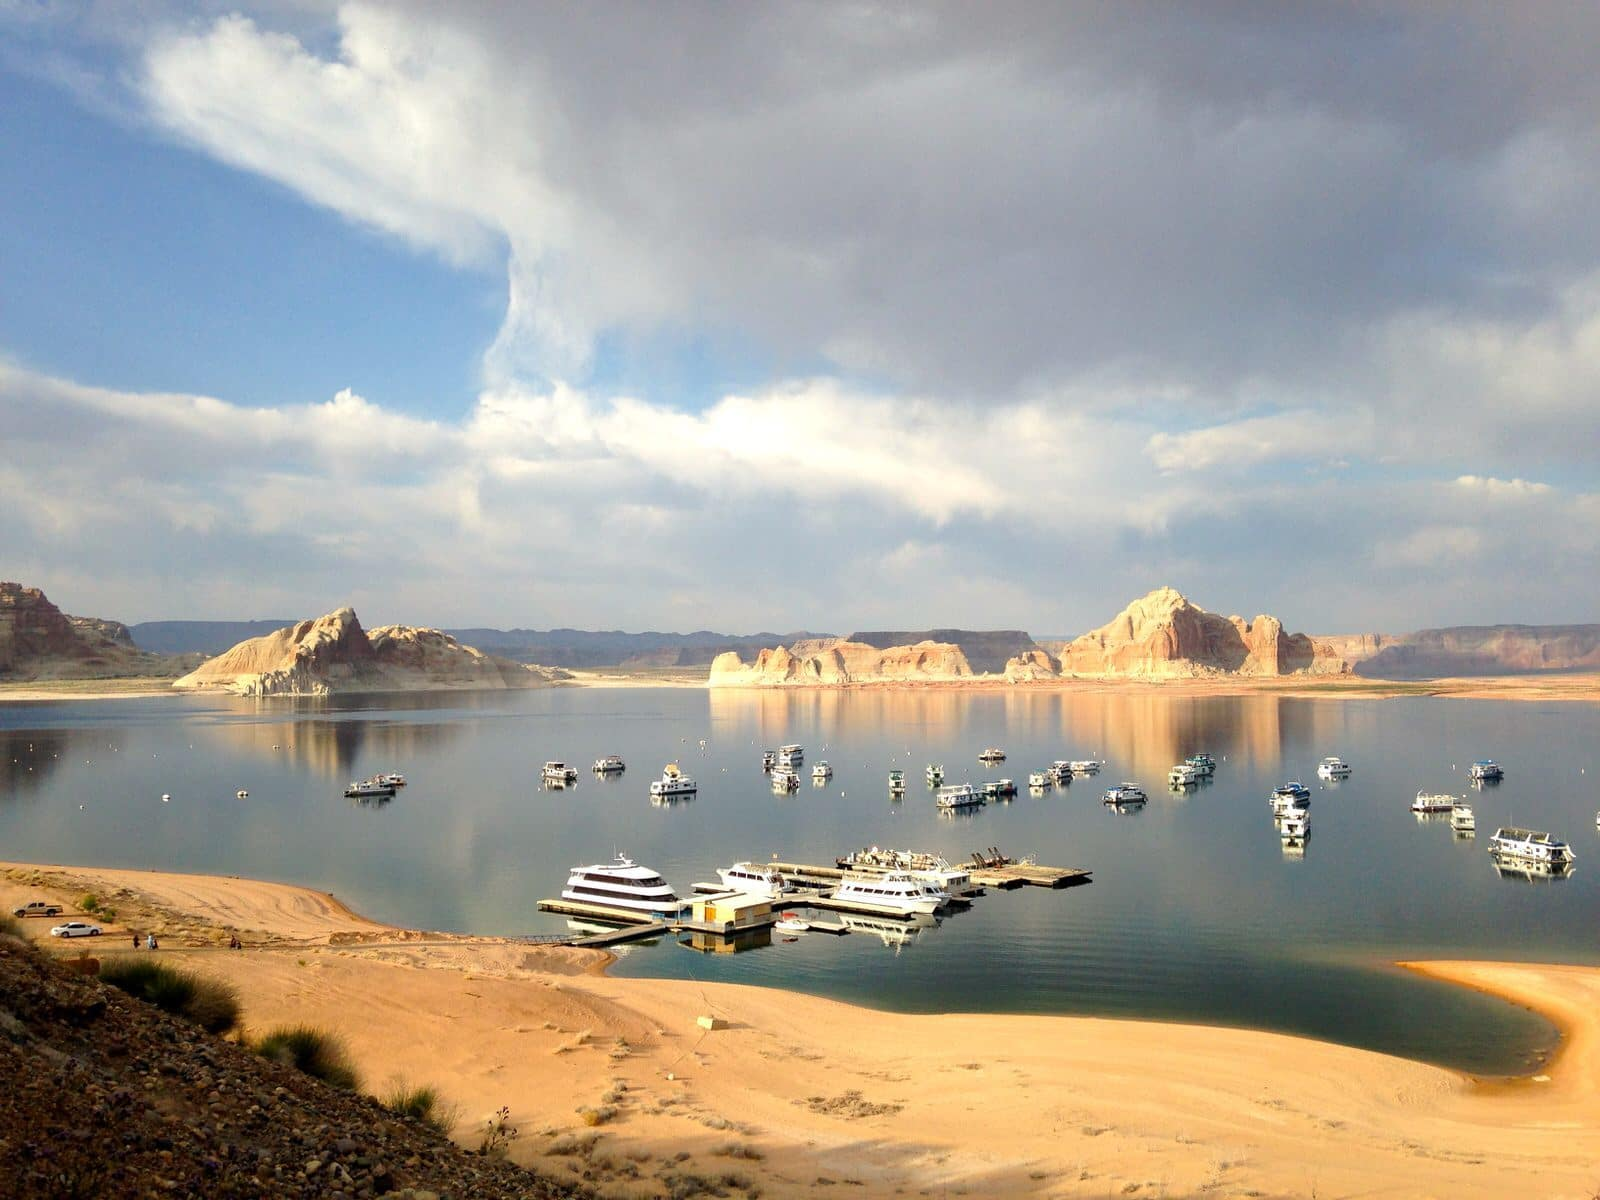 meet lake powell singles Arizona kayaking club & outdoor adventure group the best places to kayak in arizona:  arizona kayaking trip on lake powell: august  east valley singles skiing.